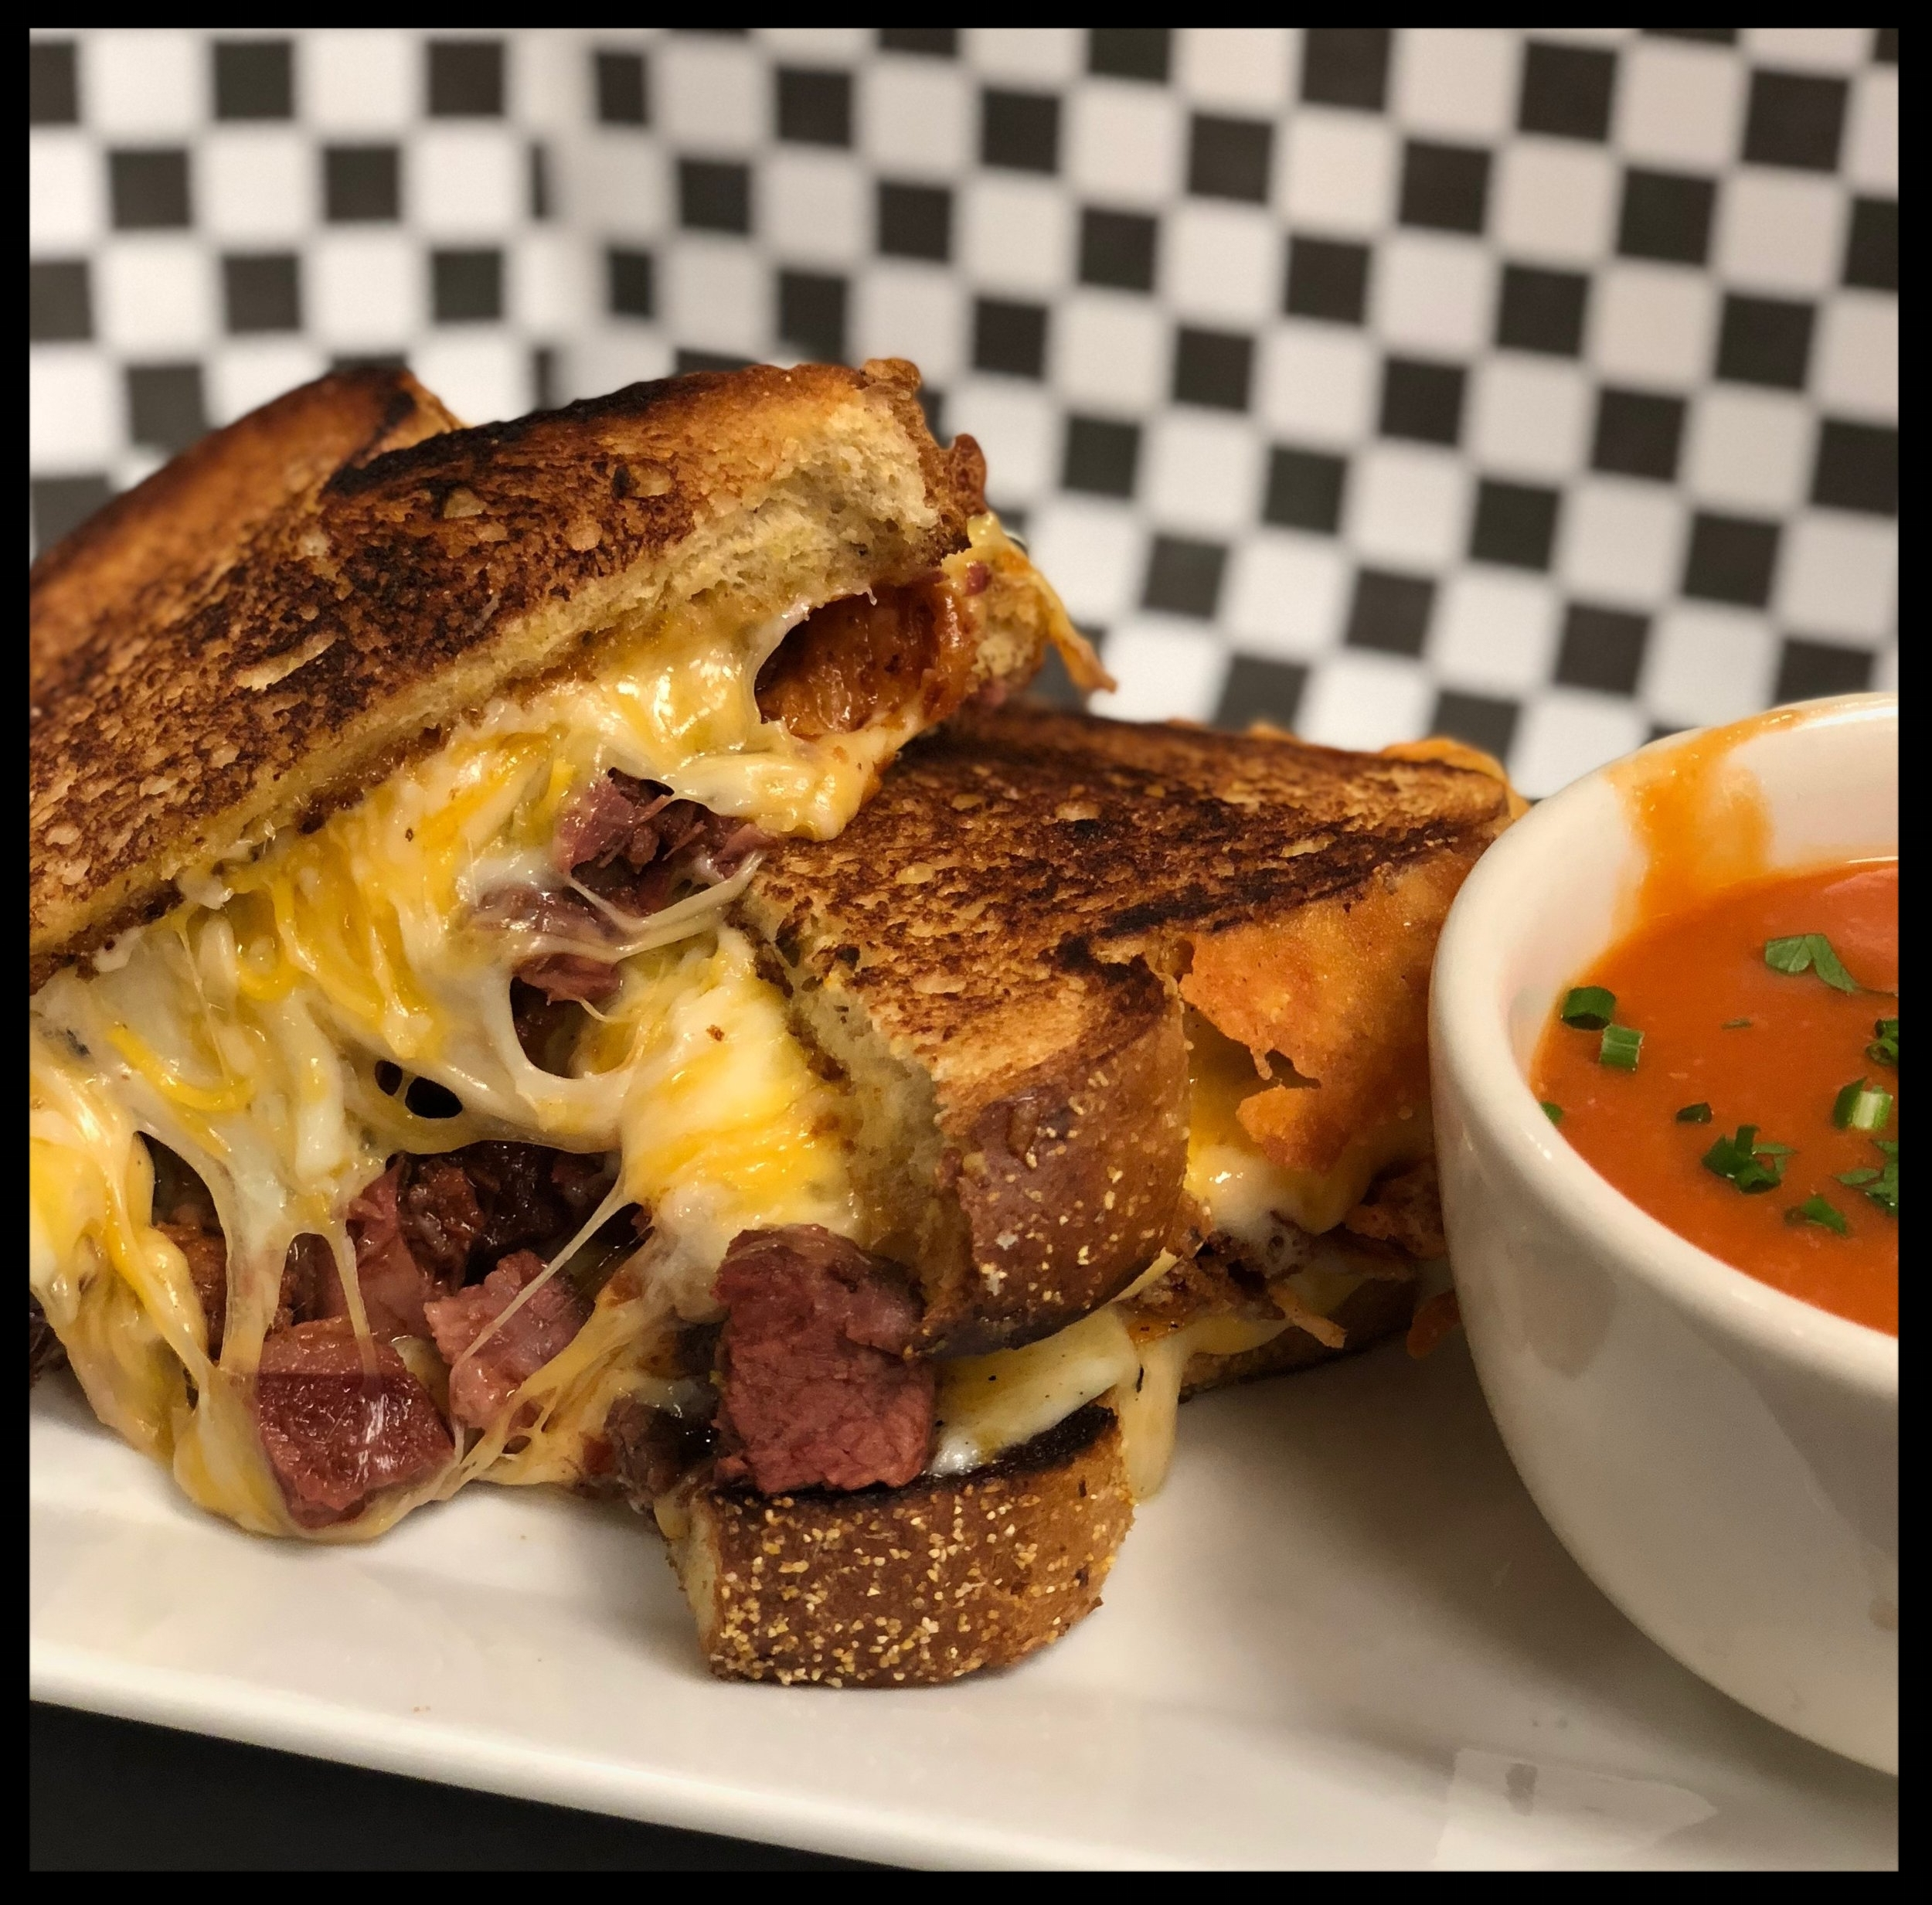 Sandwiches - Includes Fries or Tater Tots, Substitute Salad or Sweet Fries for $2